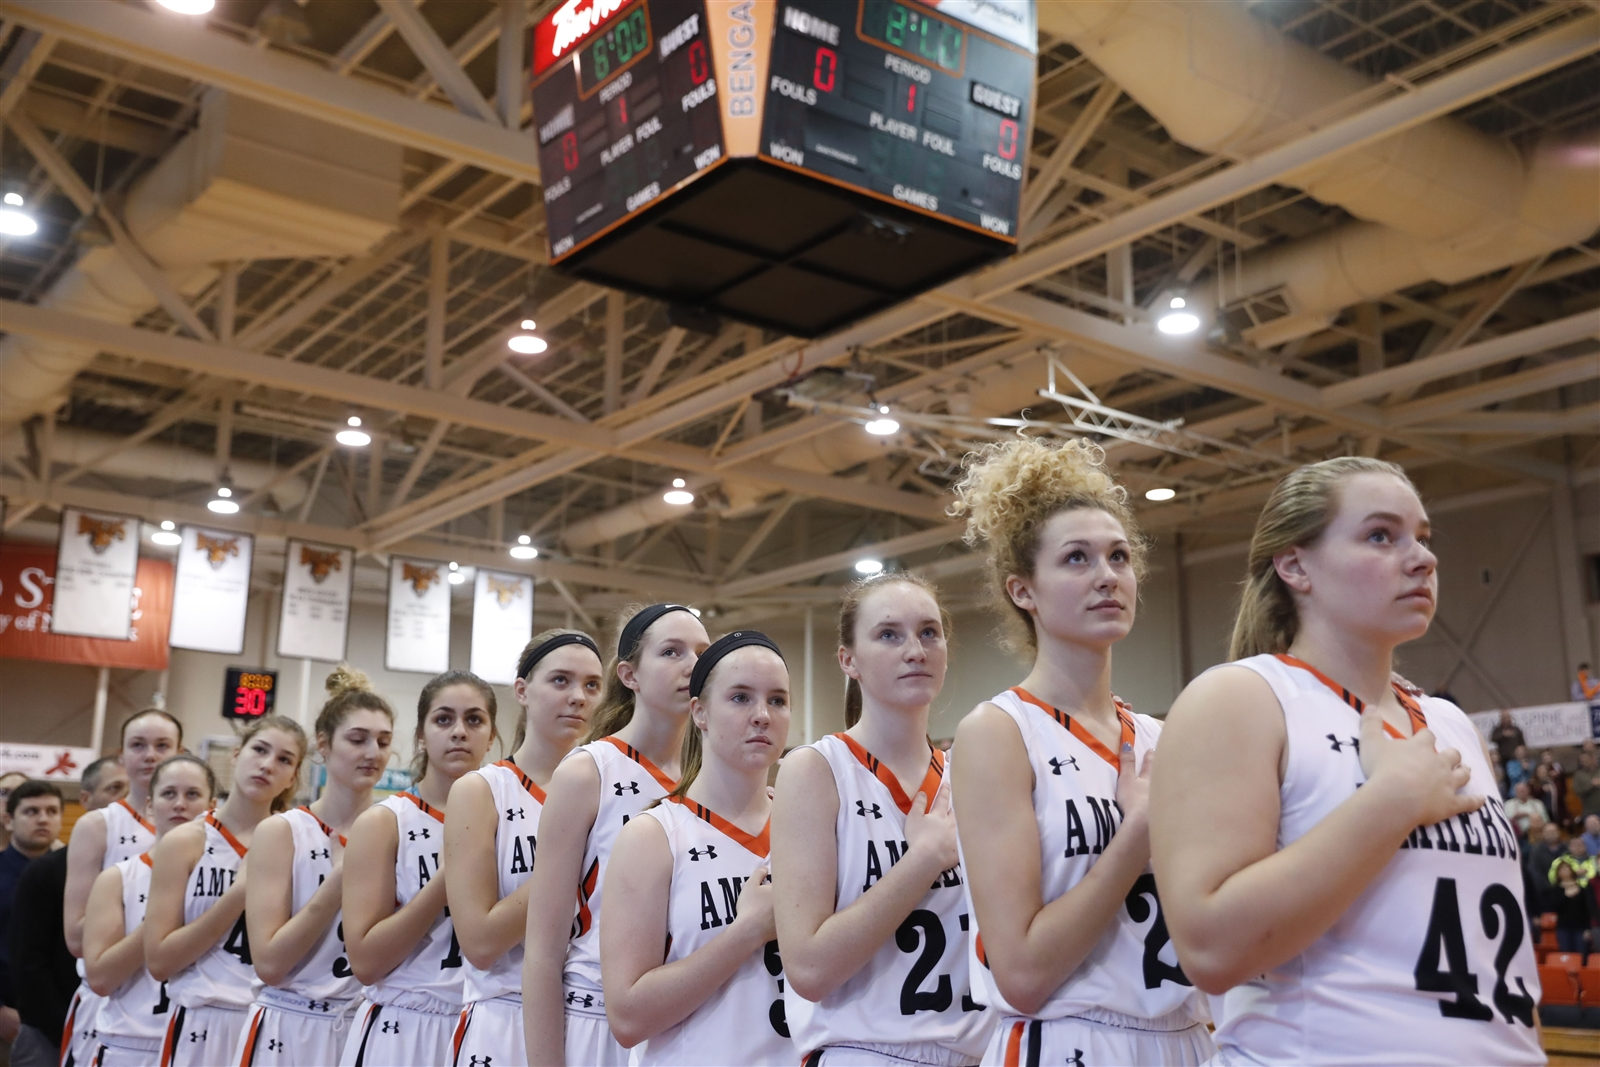 Amherst players stand for the national anthem prior to playing Pittsford Mendon for the New York State A Far West Regional Championship at the Buffalo State Sports Arena on Saturday, March 11, 2017.